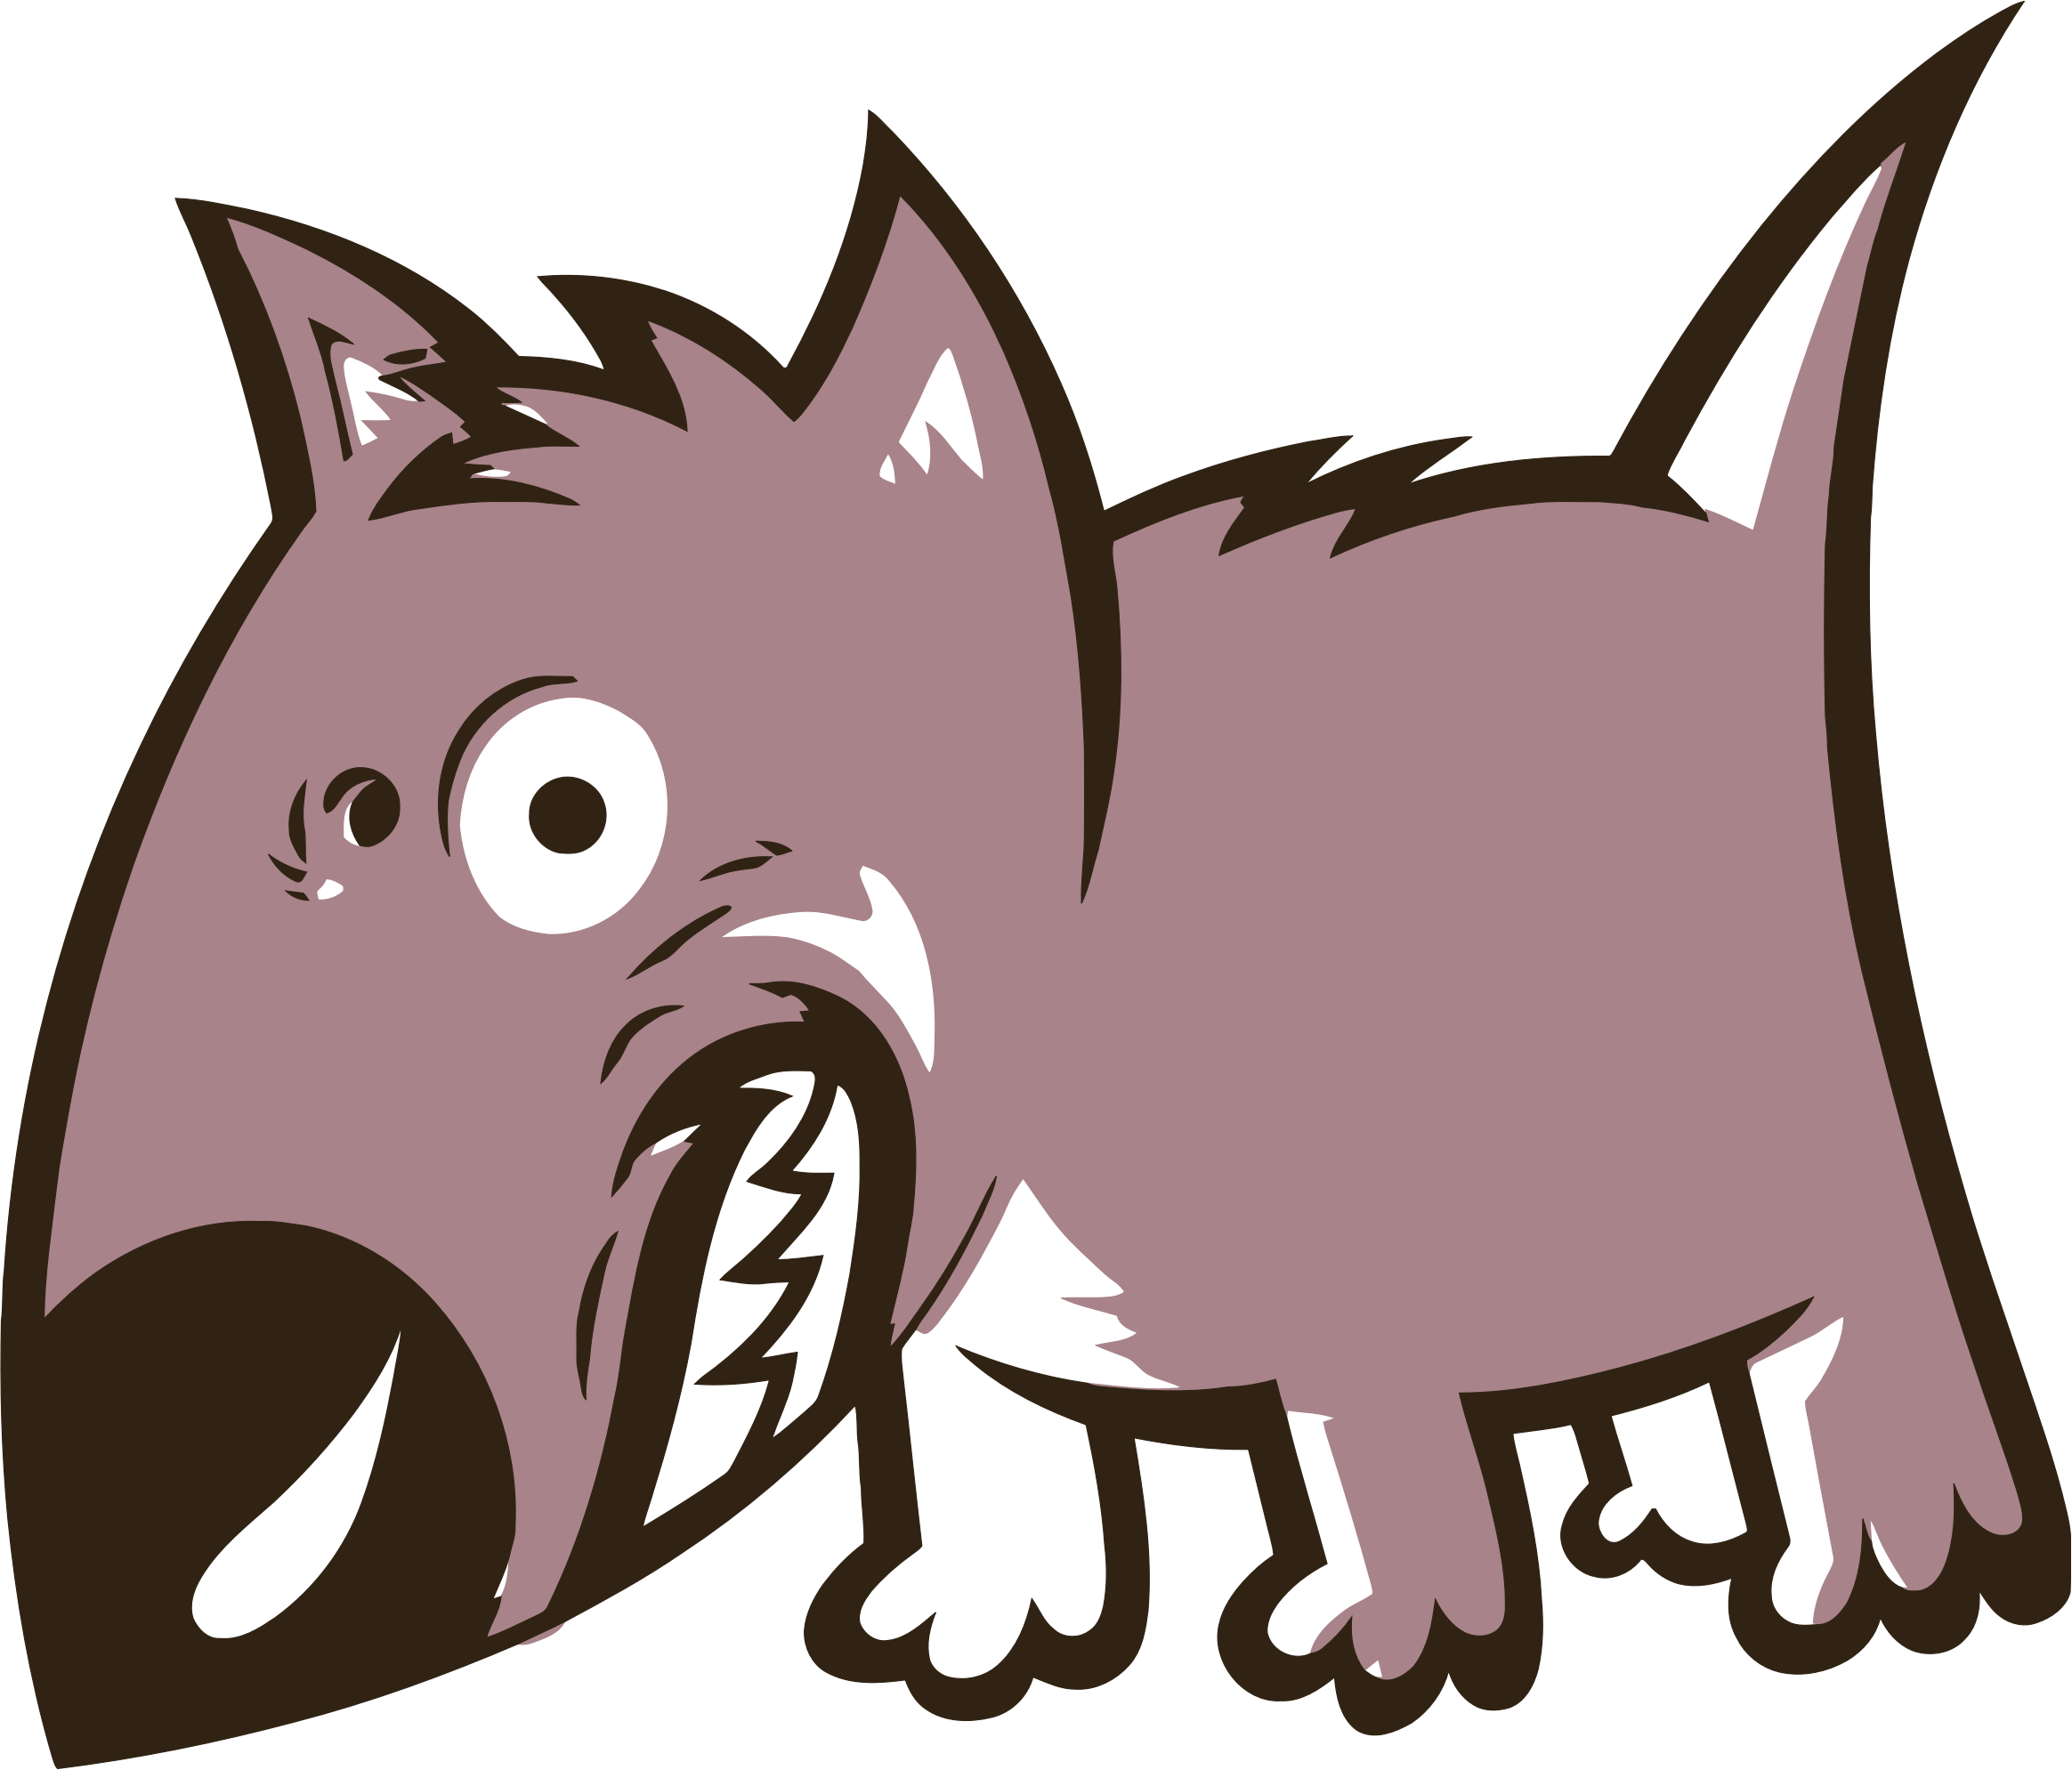 Angry Growling Cartoon Dog by GDJ